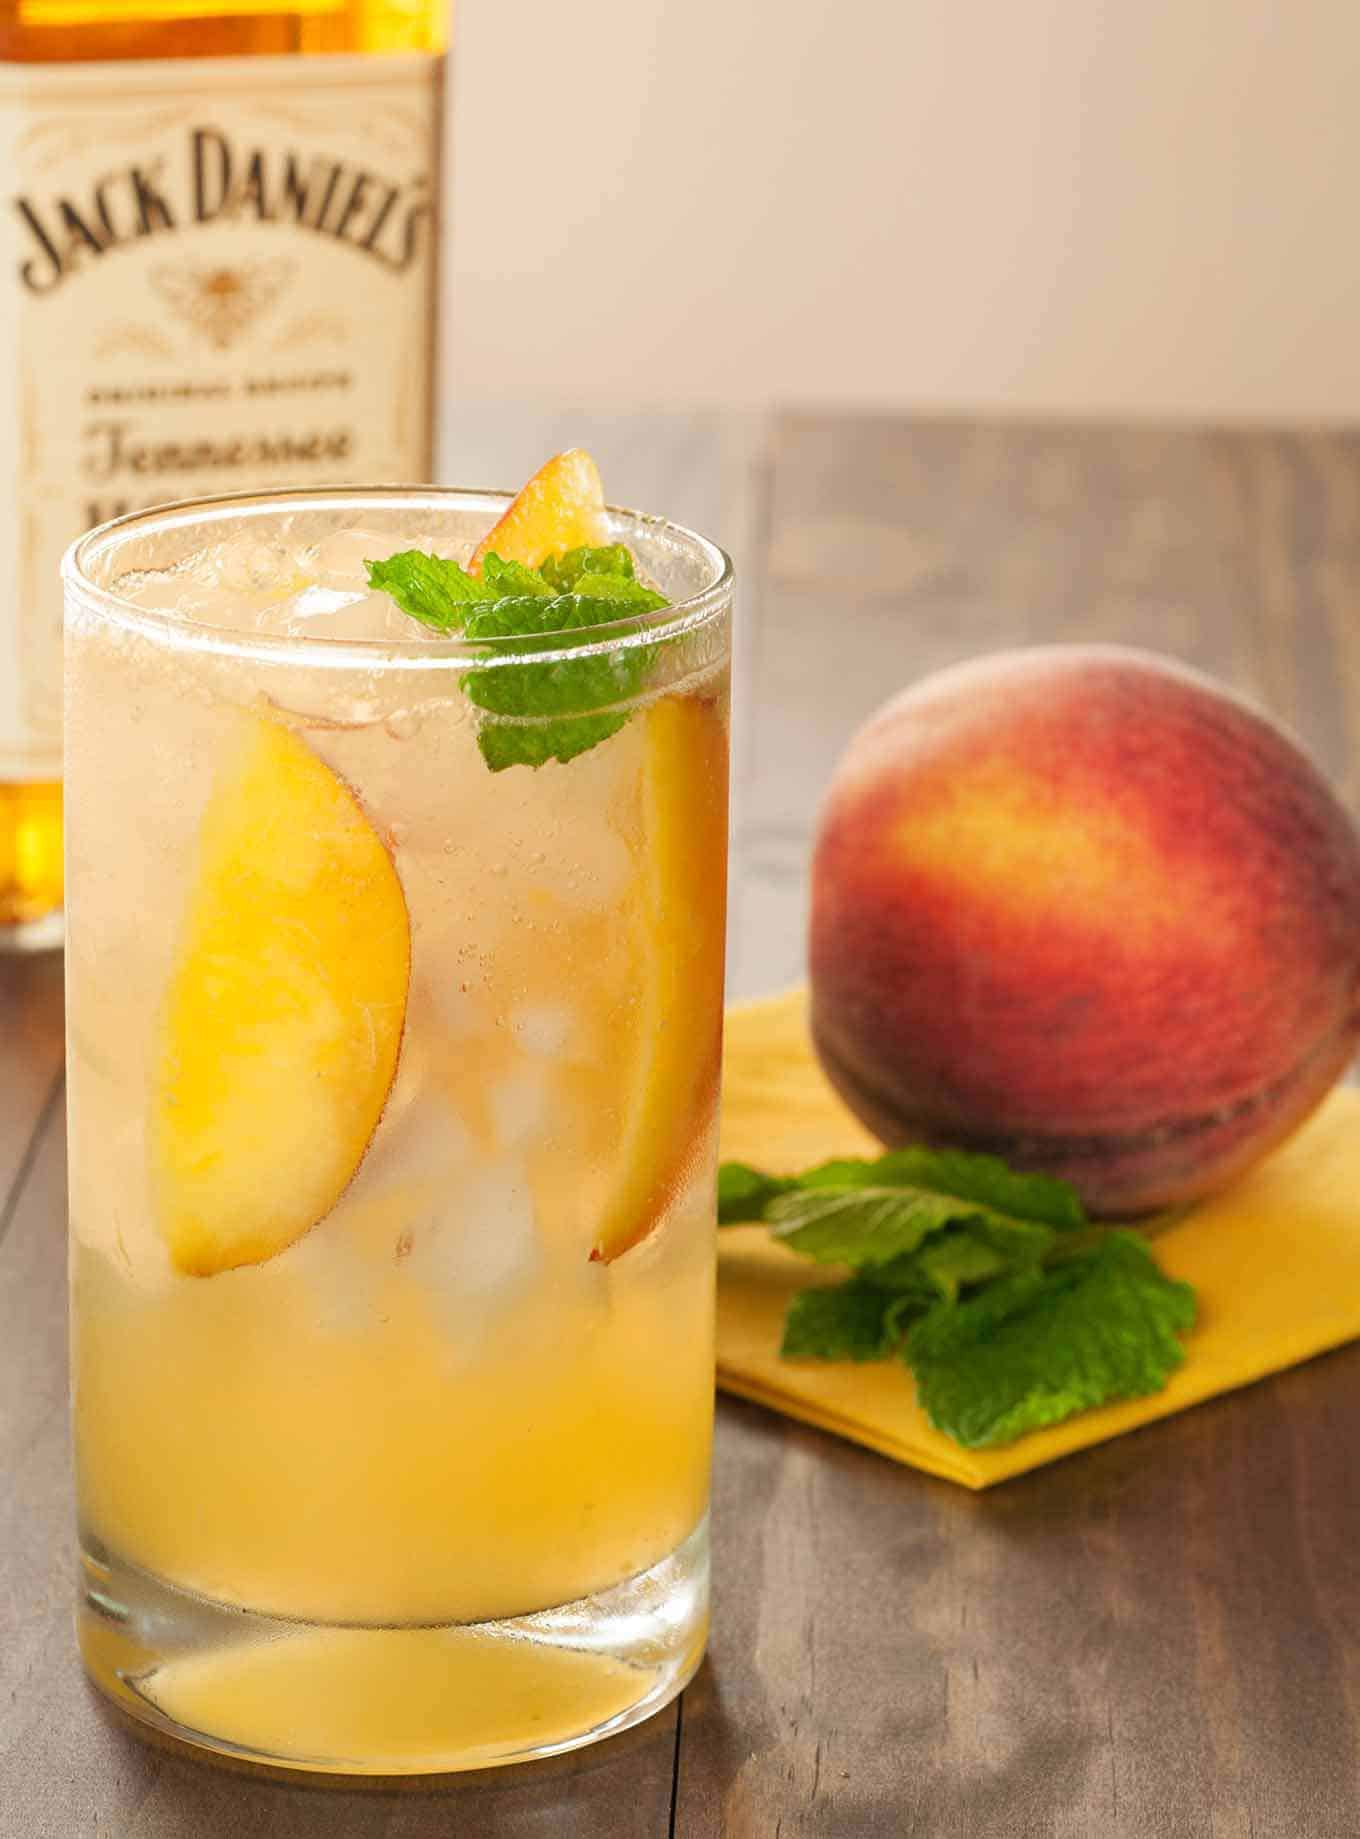 Cocktail garnished with peach slices and a sprig of mint with a whole peach and Jack Daniel's bottle in the background.